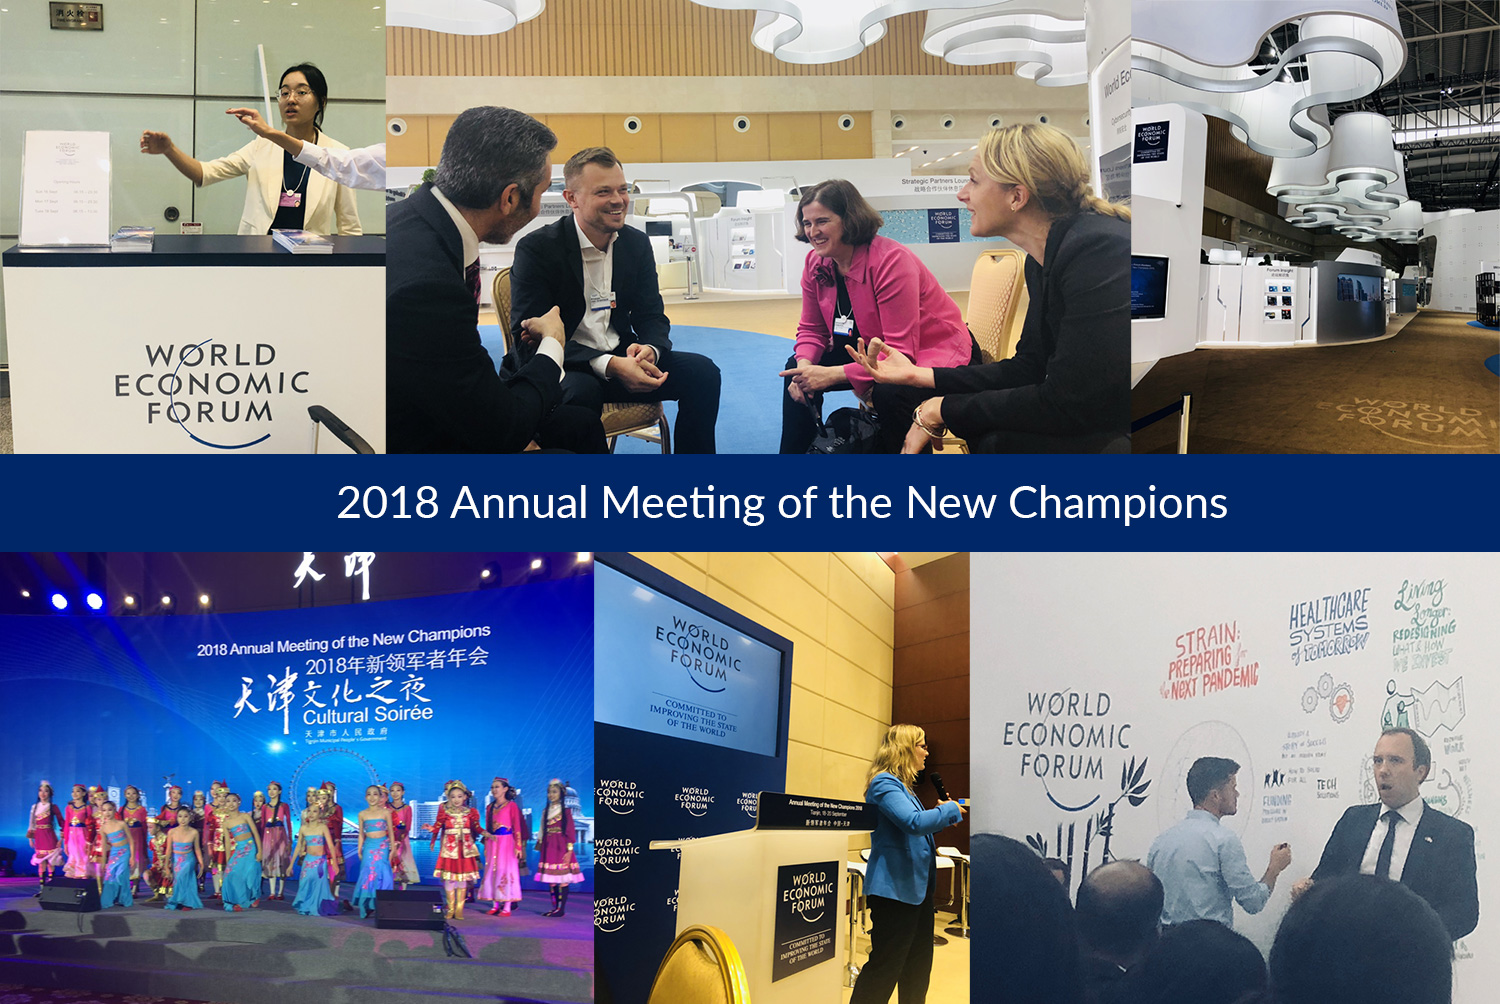 Collage from the 2018 Annual Meeting of the New Champions